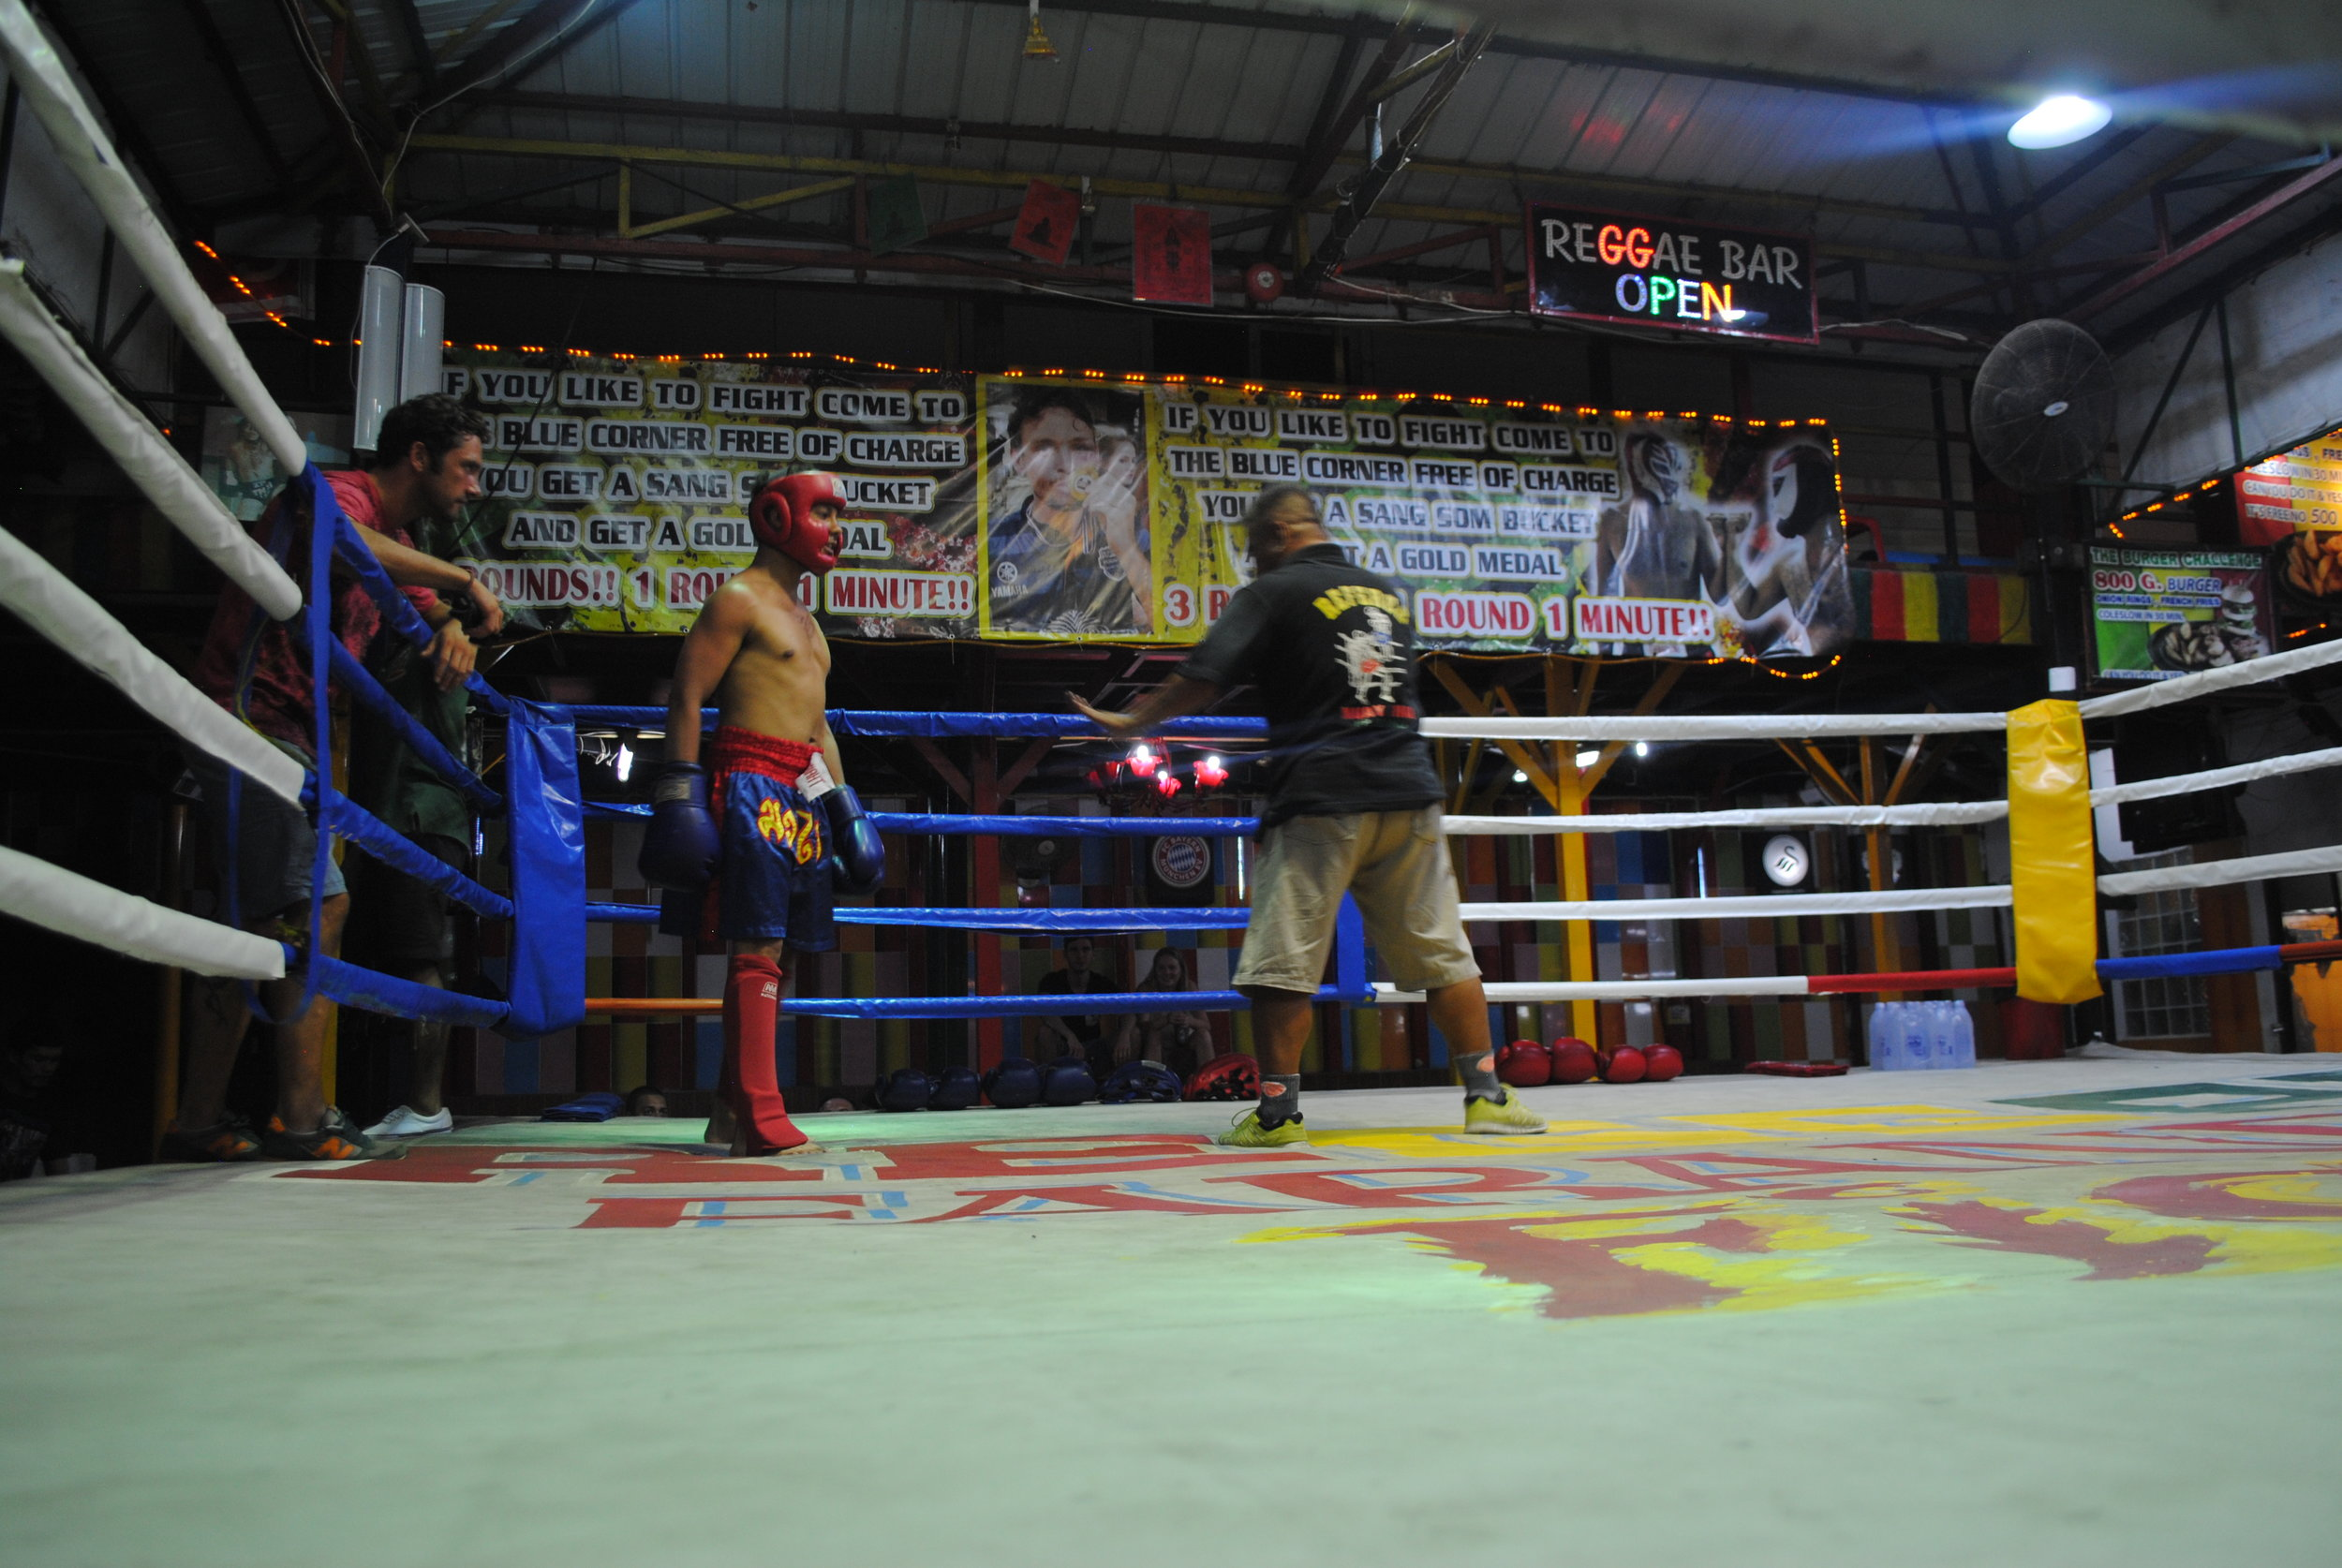 """An example of what makes Thailand """"The Perfect Adventure"""" – Muay Thai fighting at Reggae Bar"""